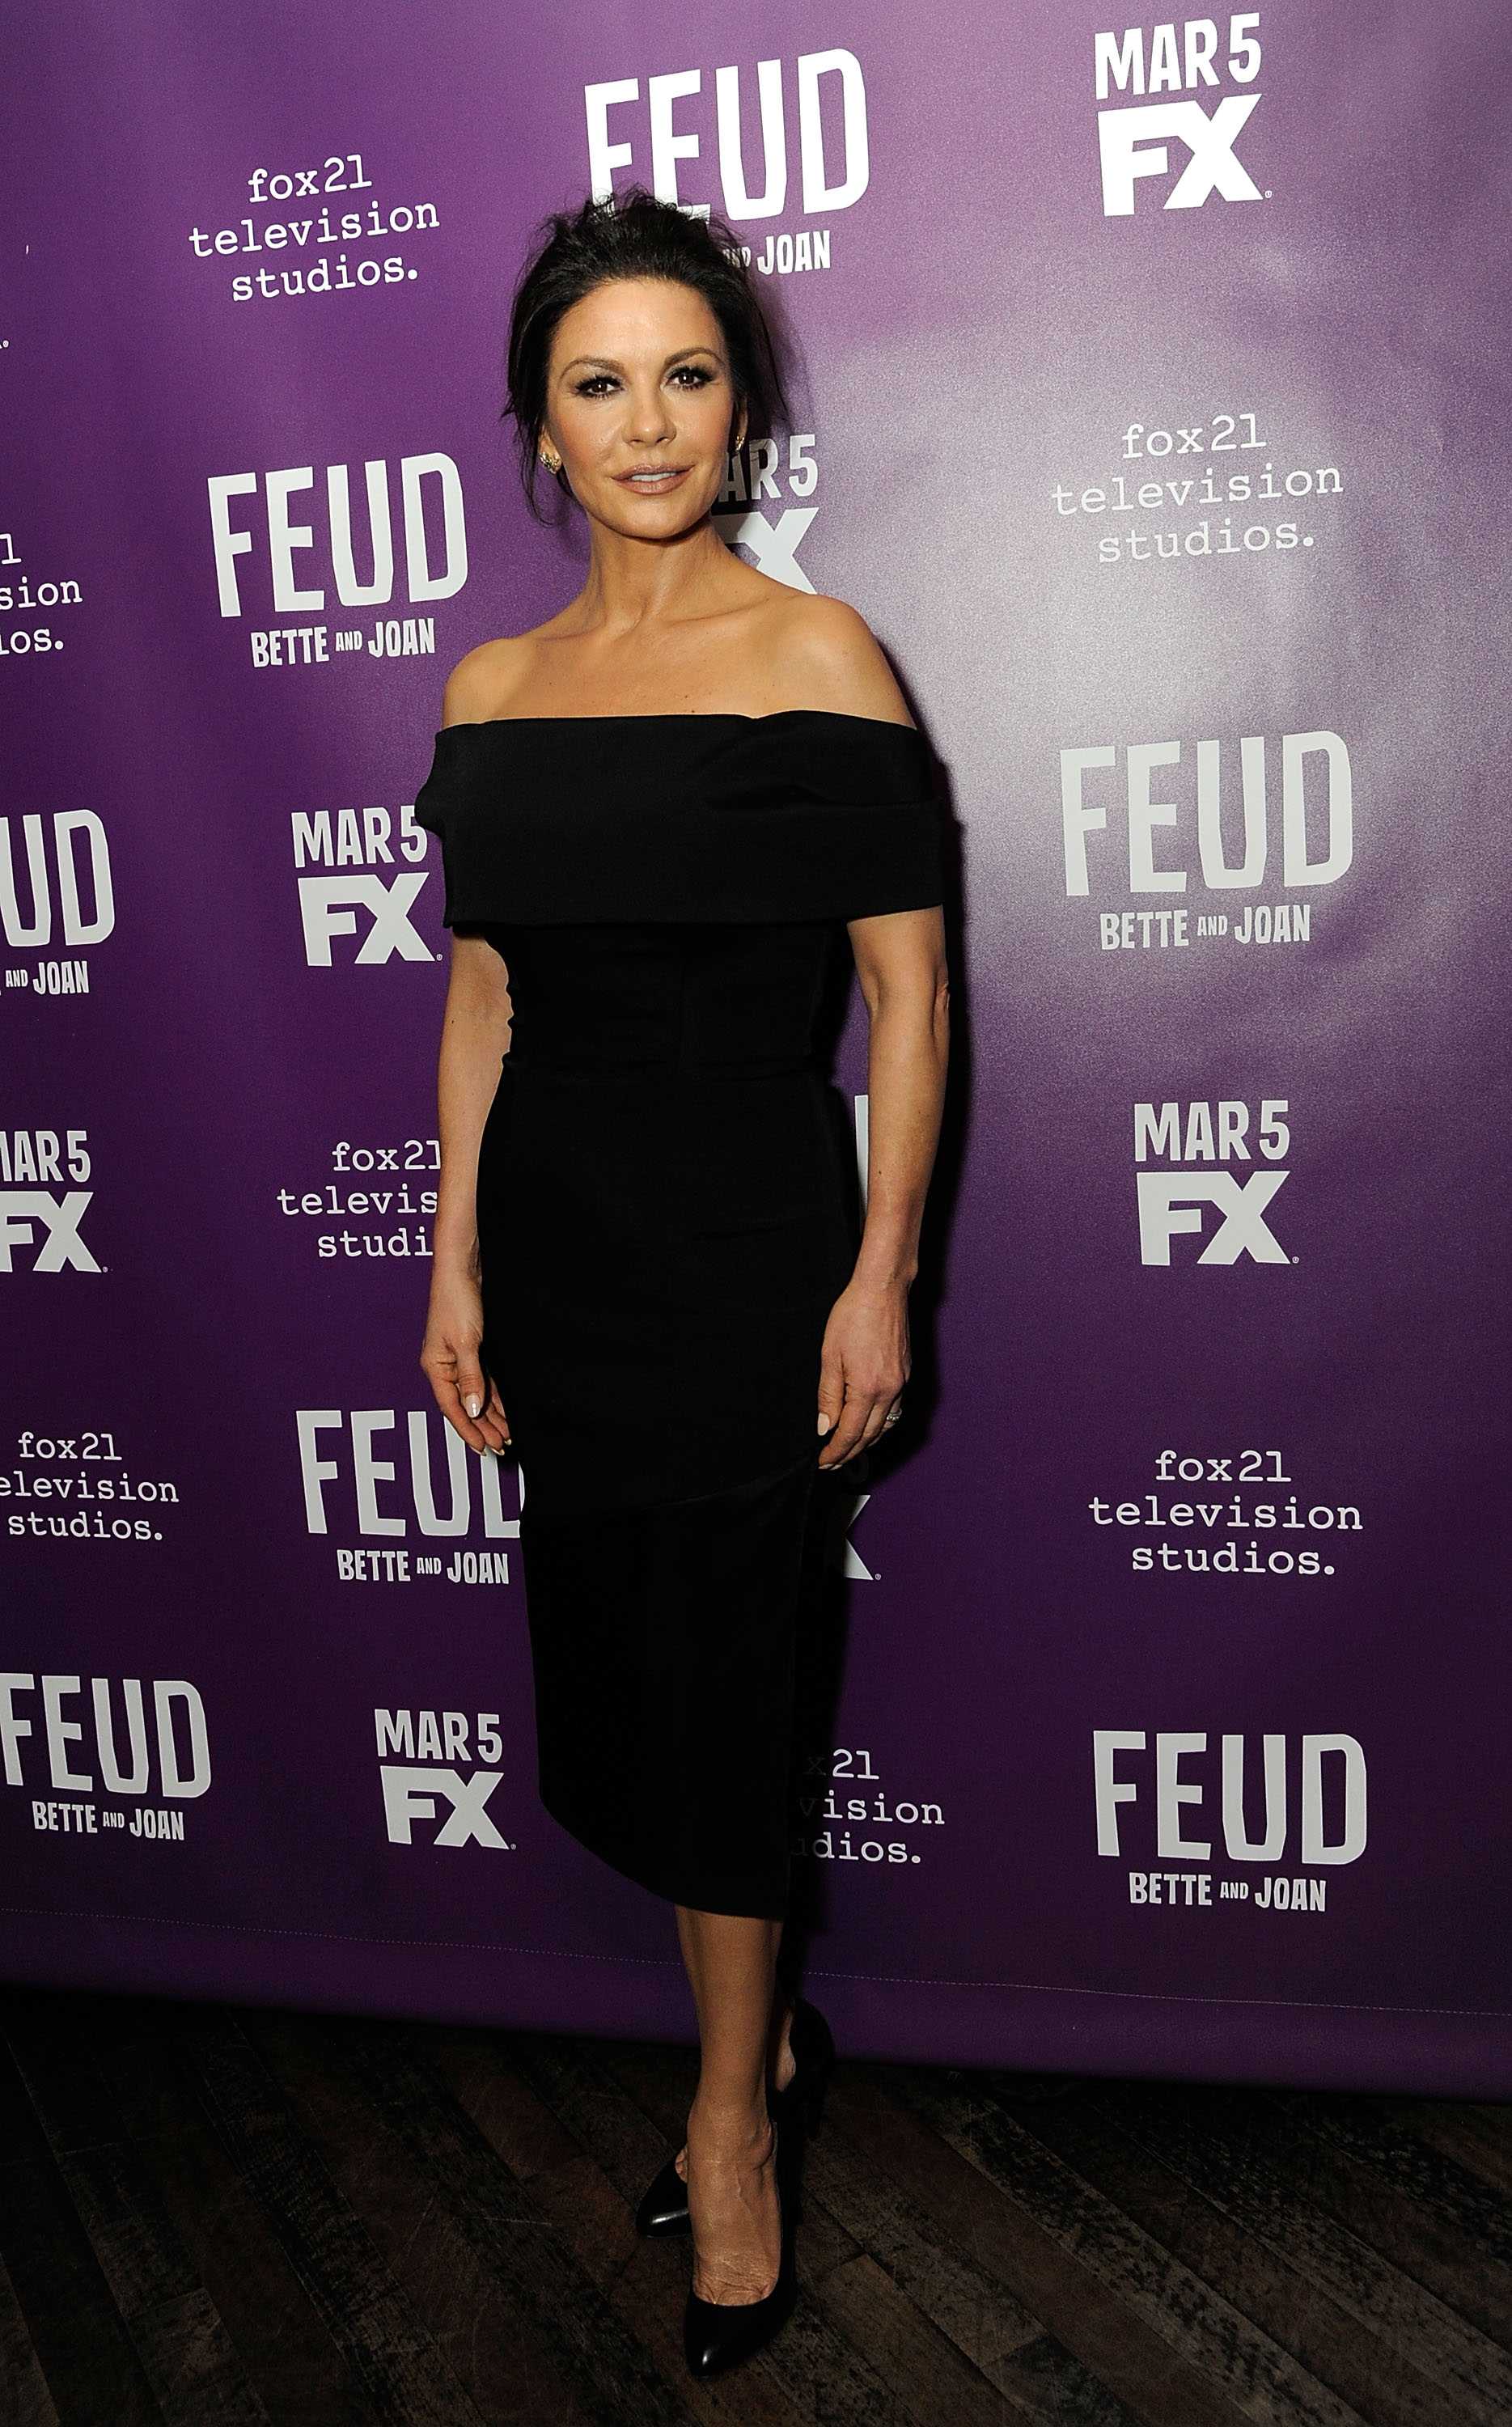 Catherine Zeta Jones at the premiere of her new show Feud.